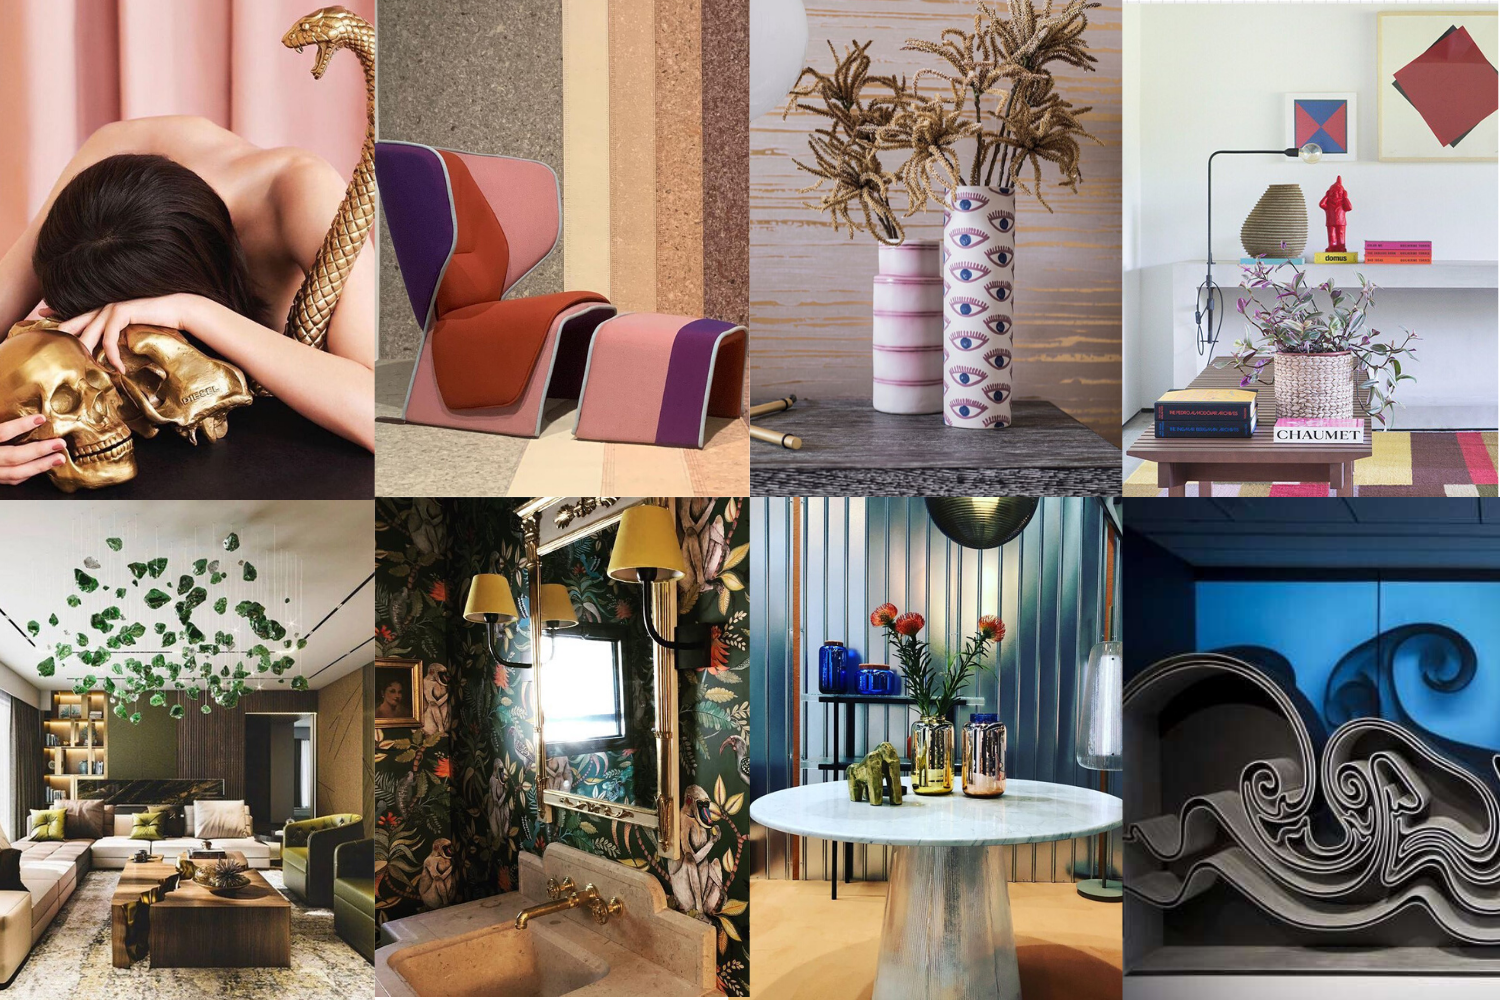 Top Designers That Inspire Us Daily On Instagram (Part 20)